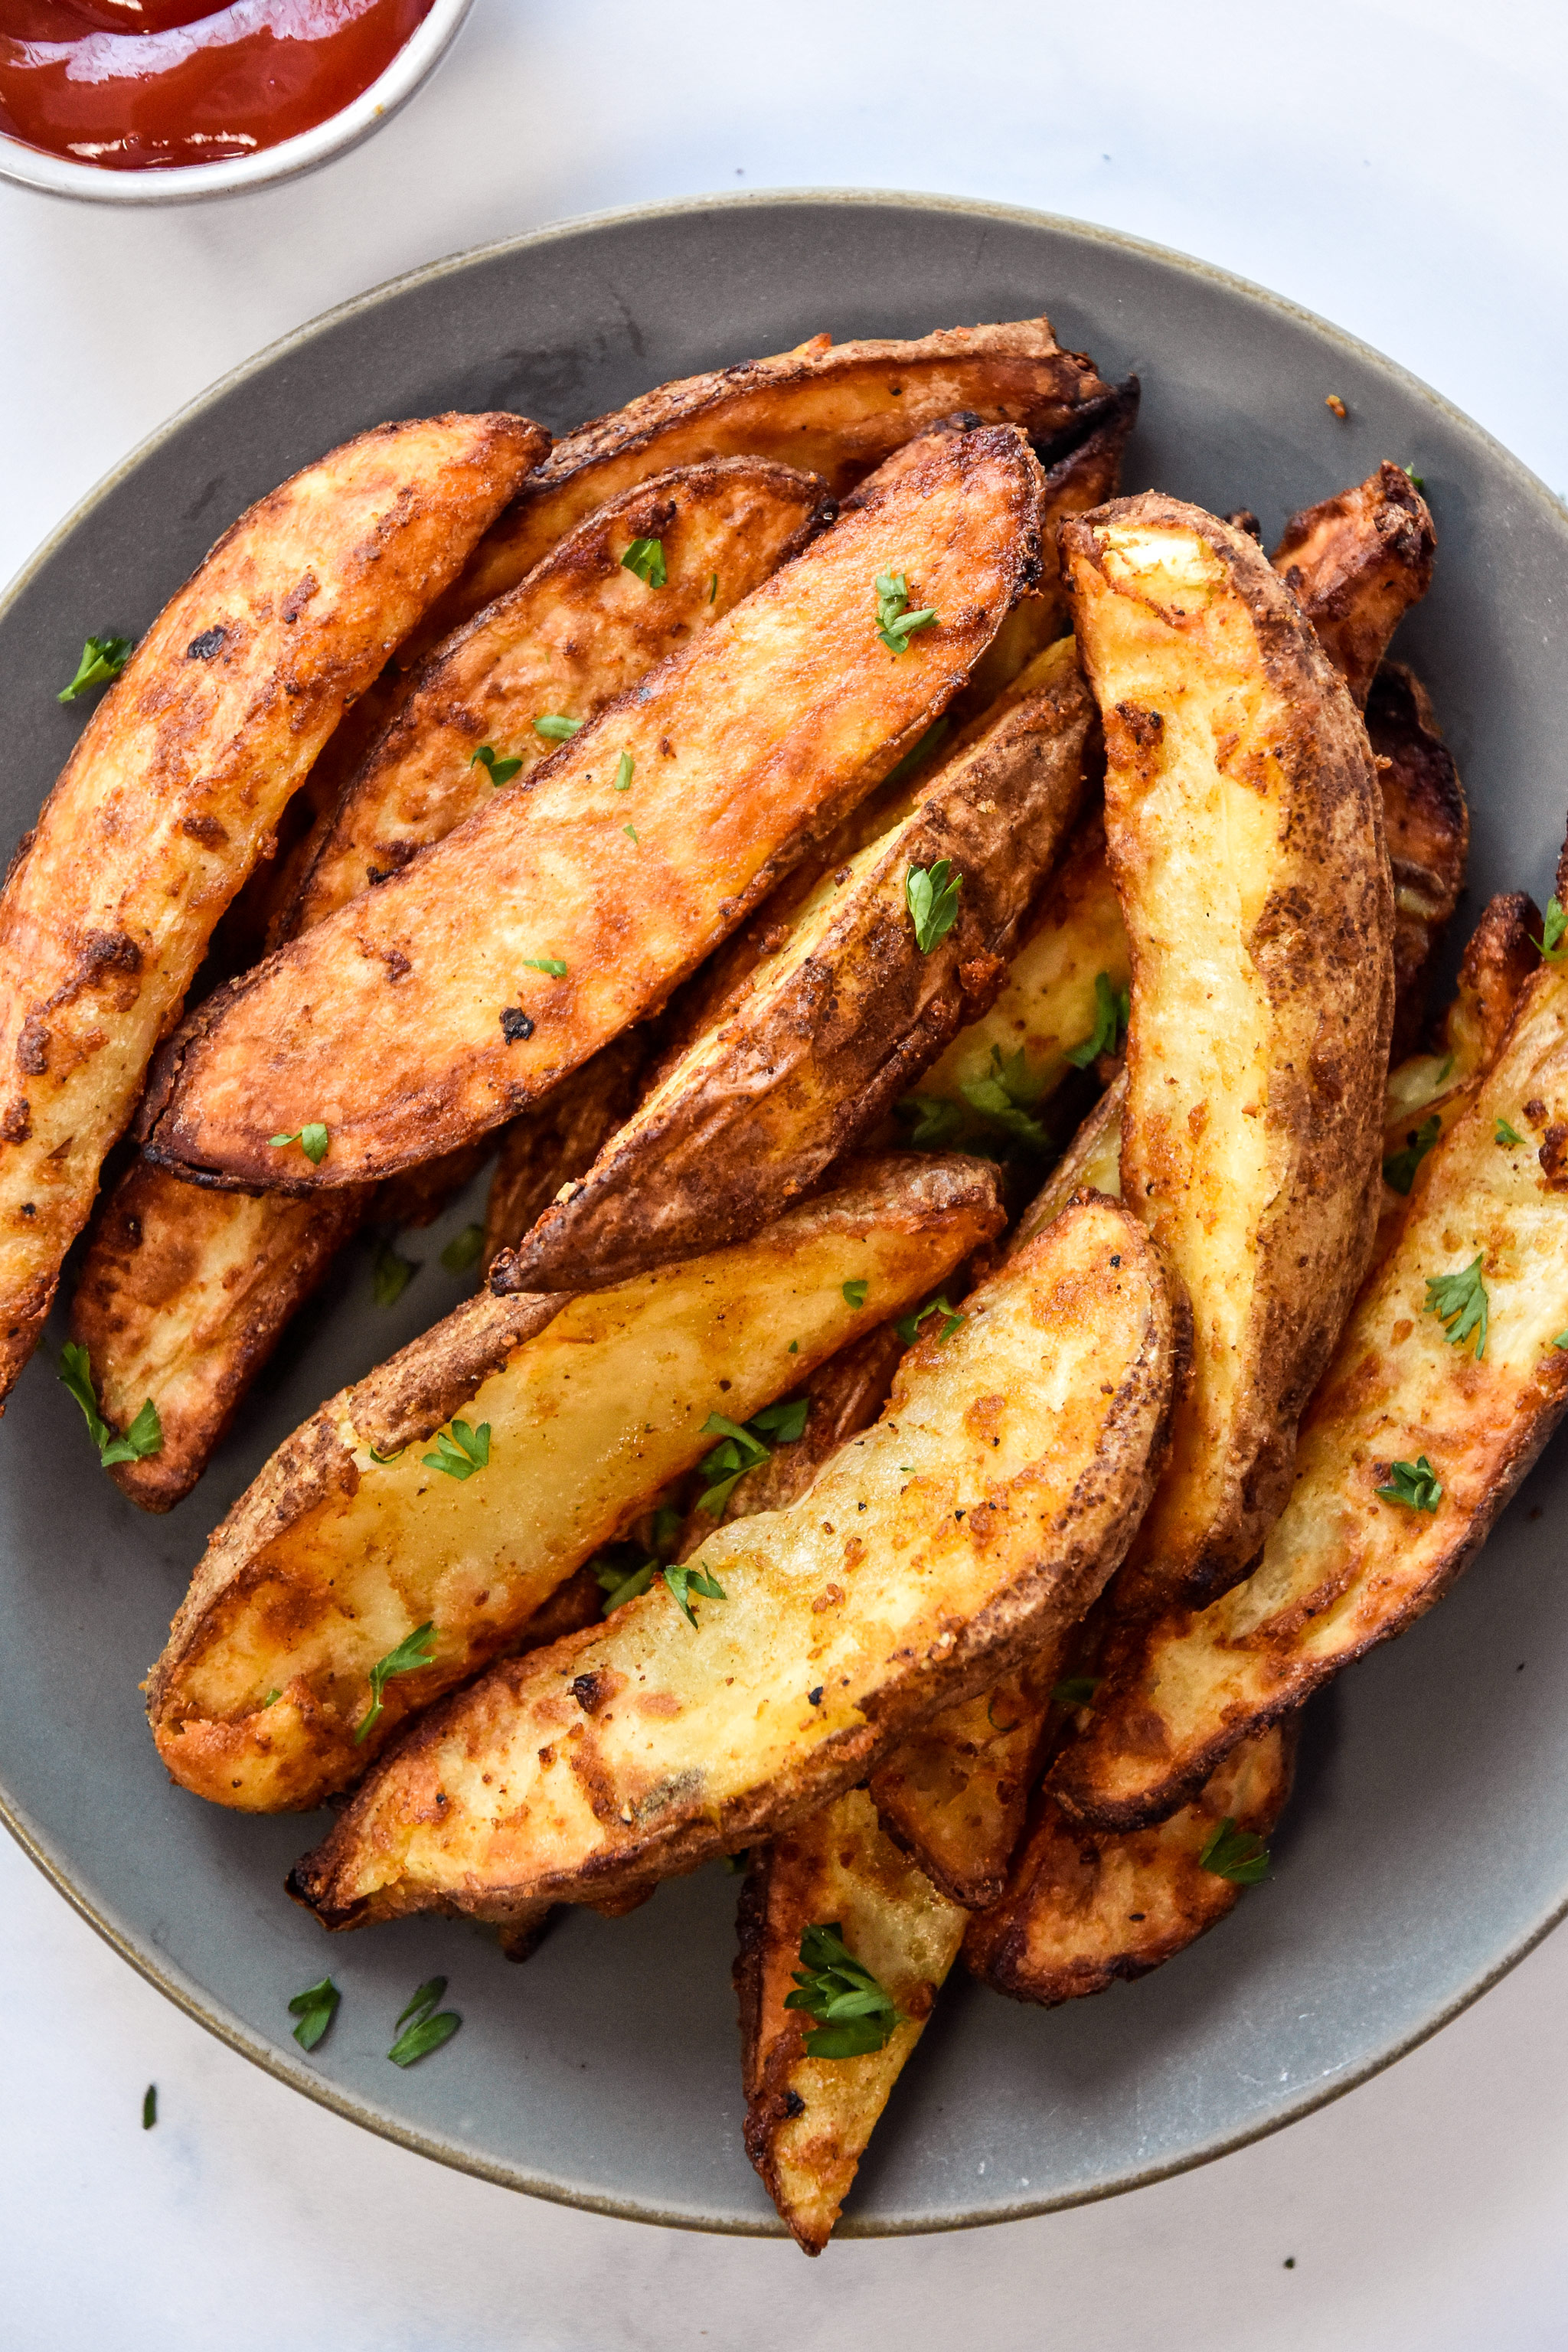 air fryer jojo potatoes wedges on a plate with ketchup on the side.